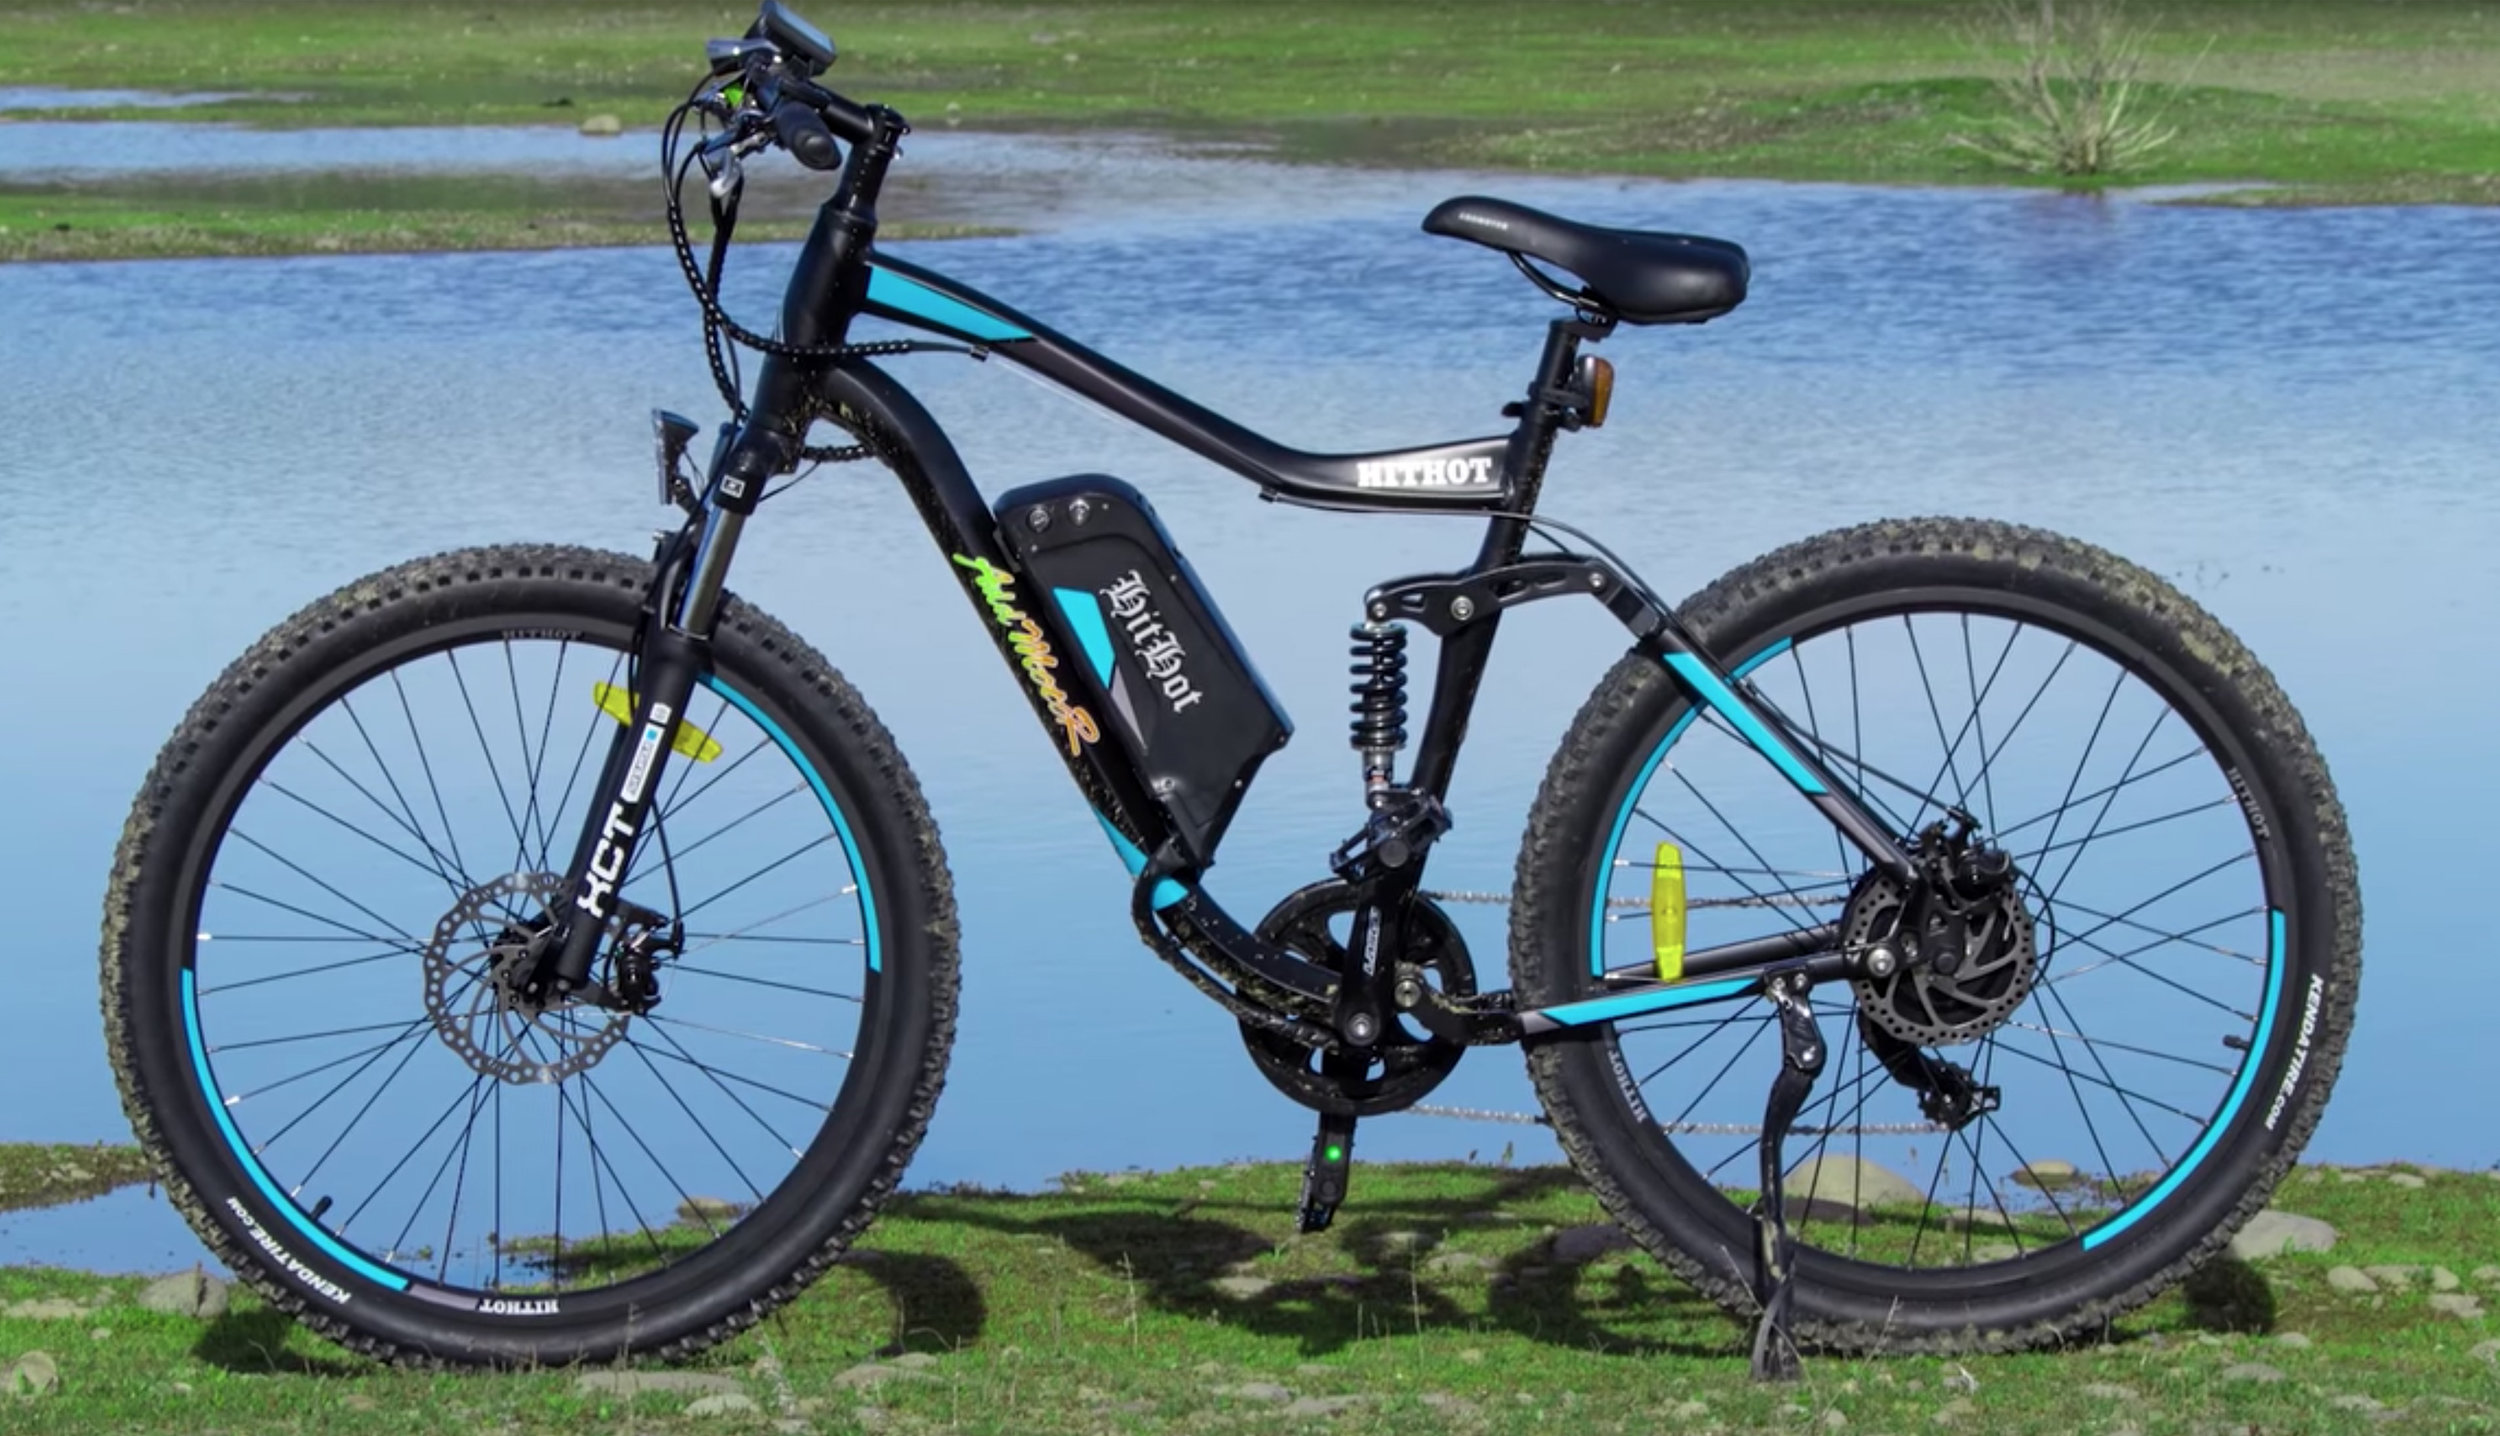 electrified-reviews-addmotor-hithot-h1-electric-bike-review-profile-left-2.jpg